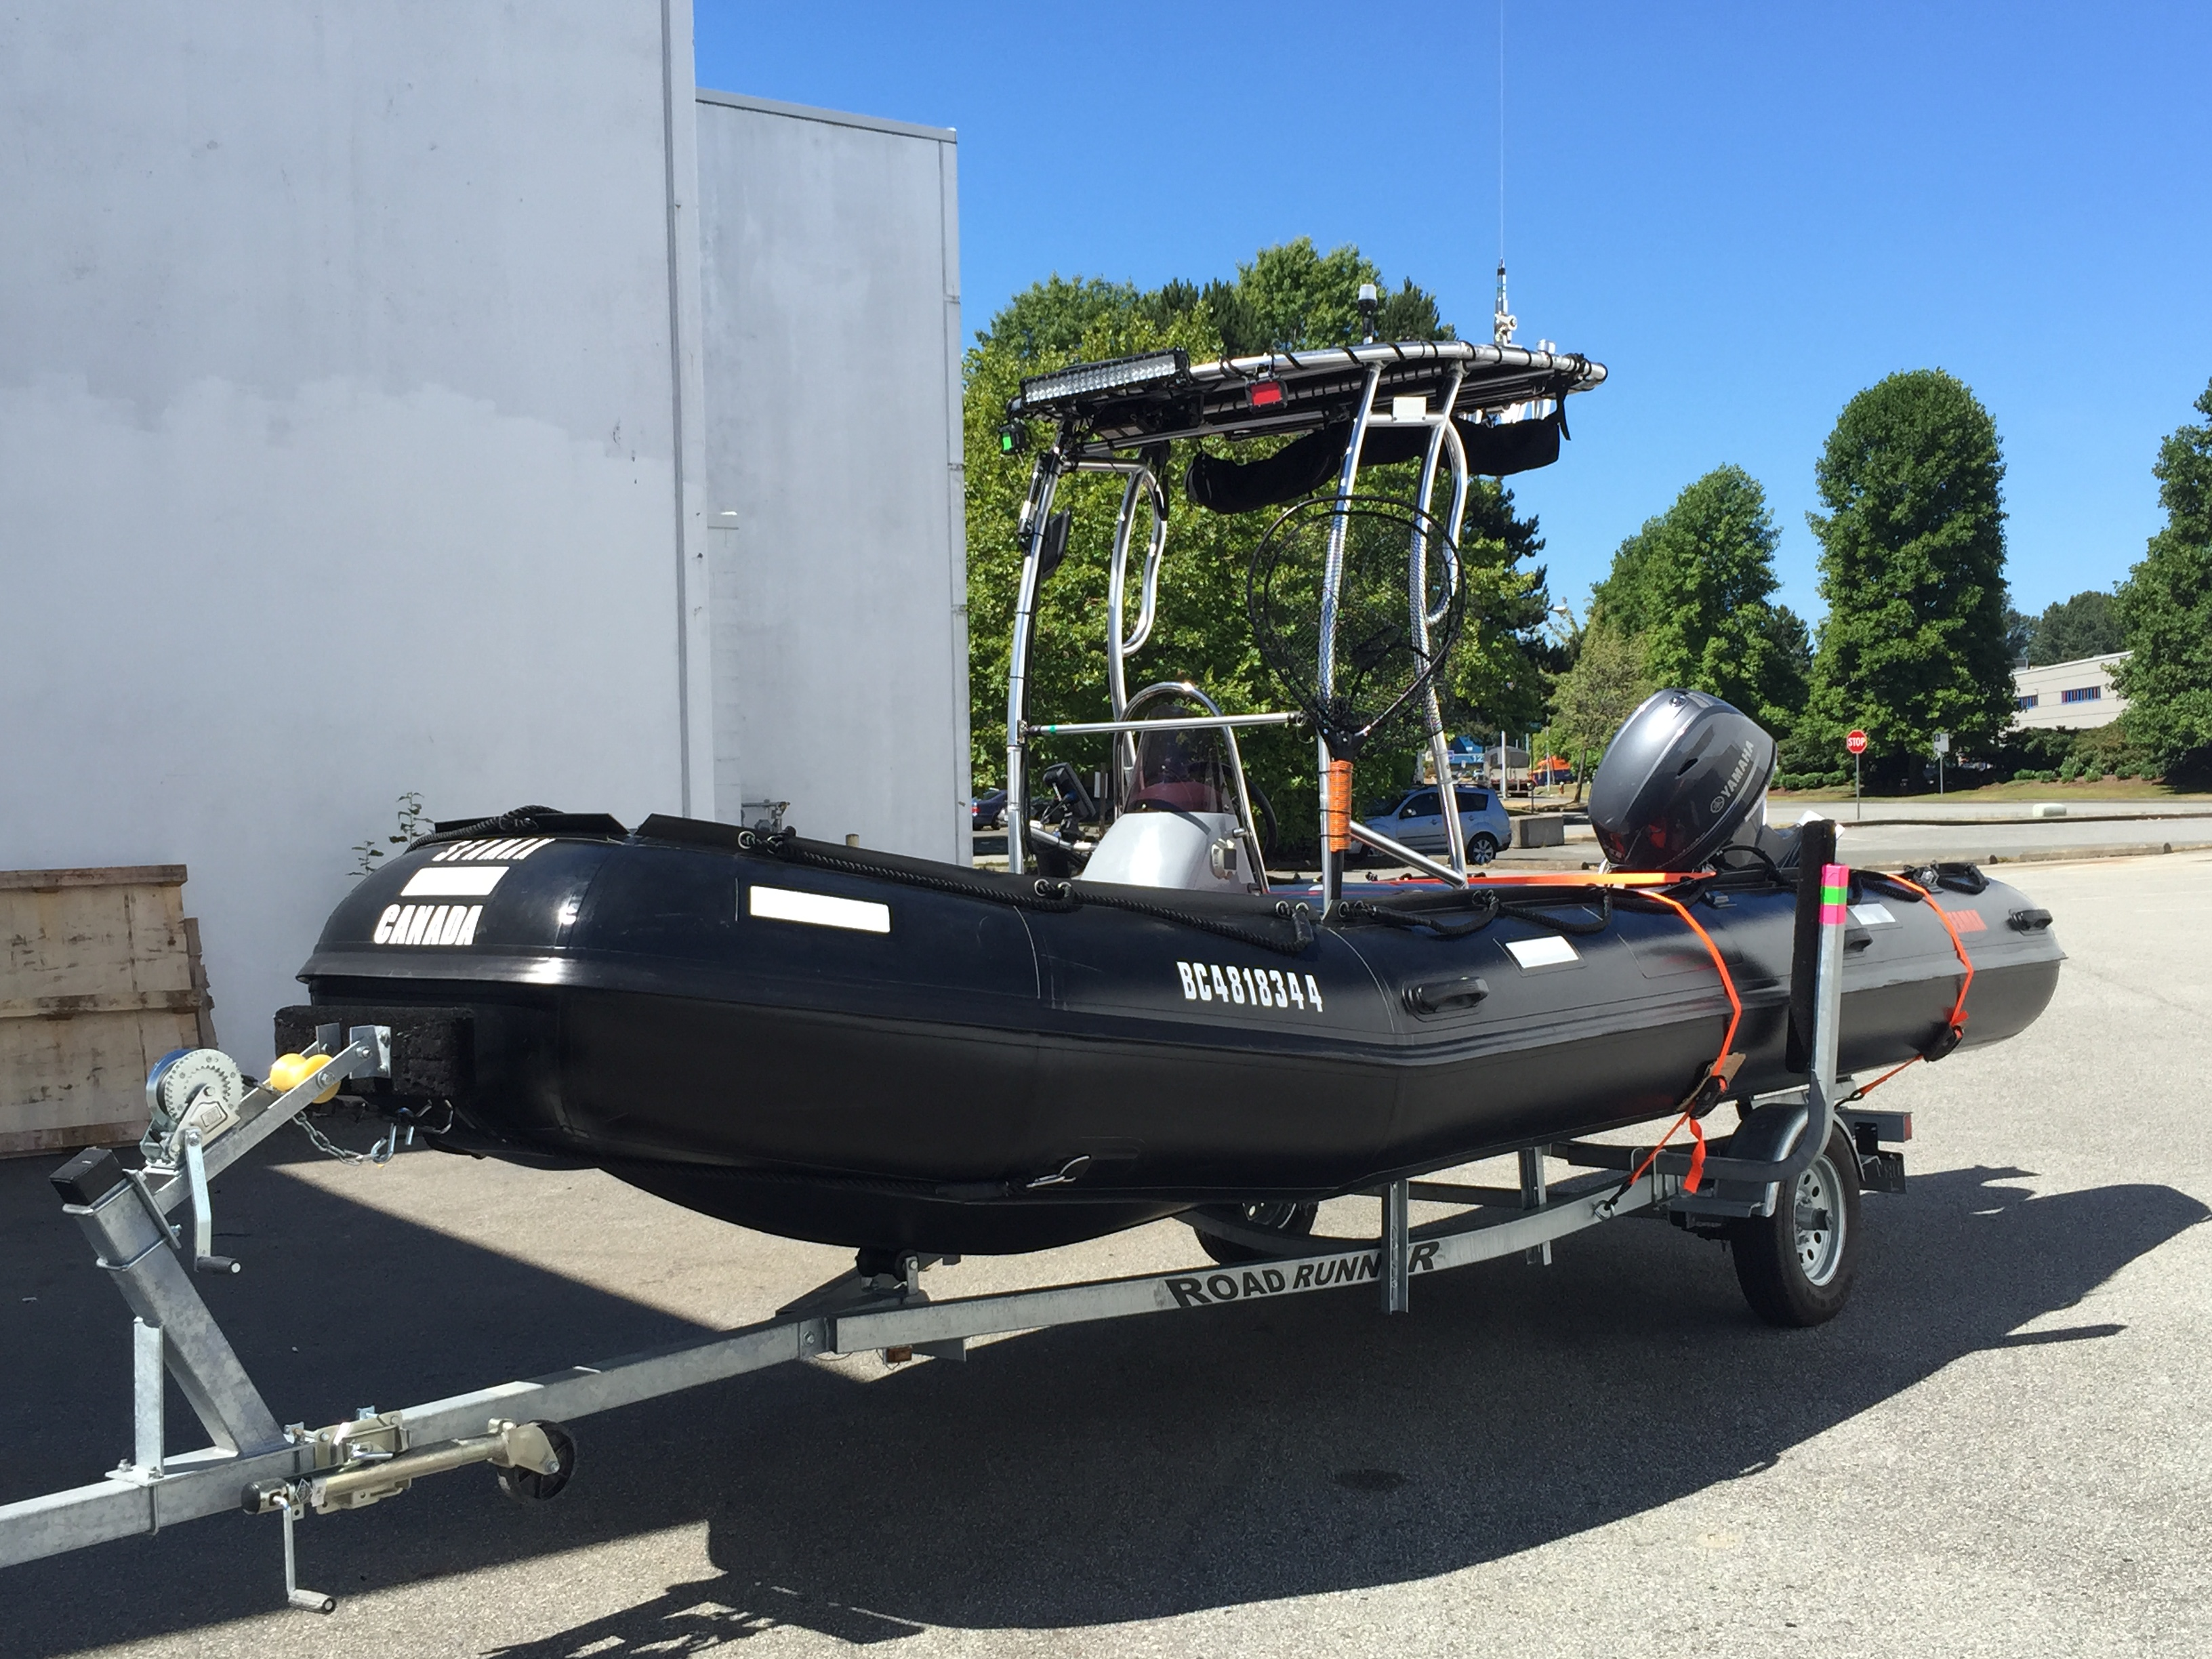 aurora boat care products review